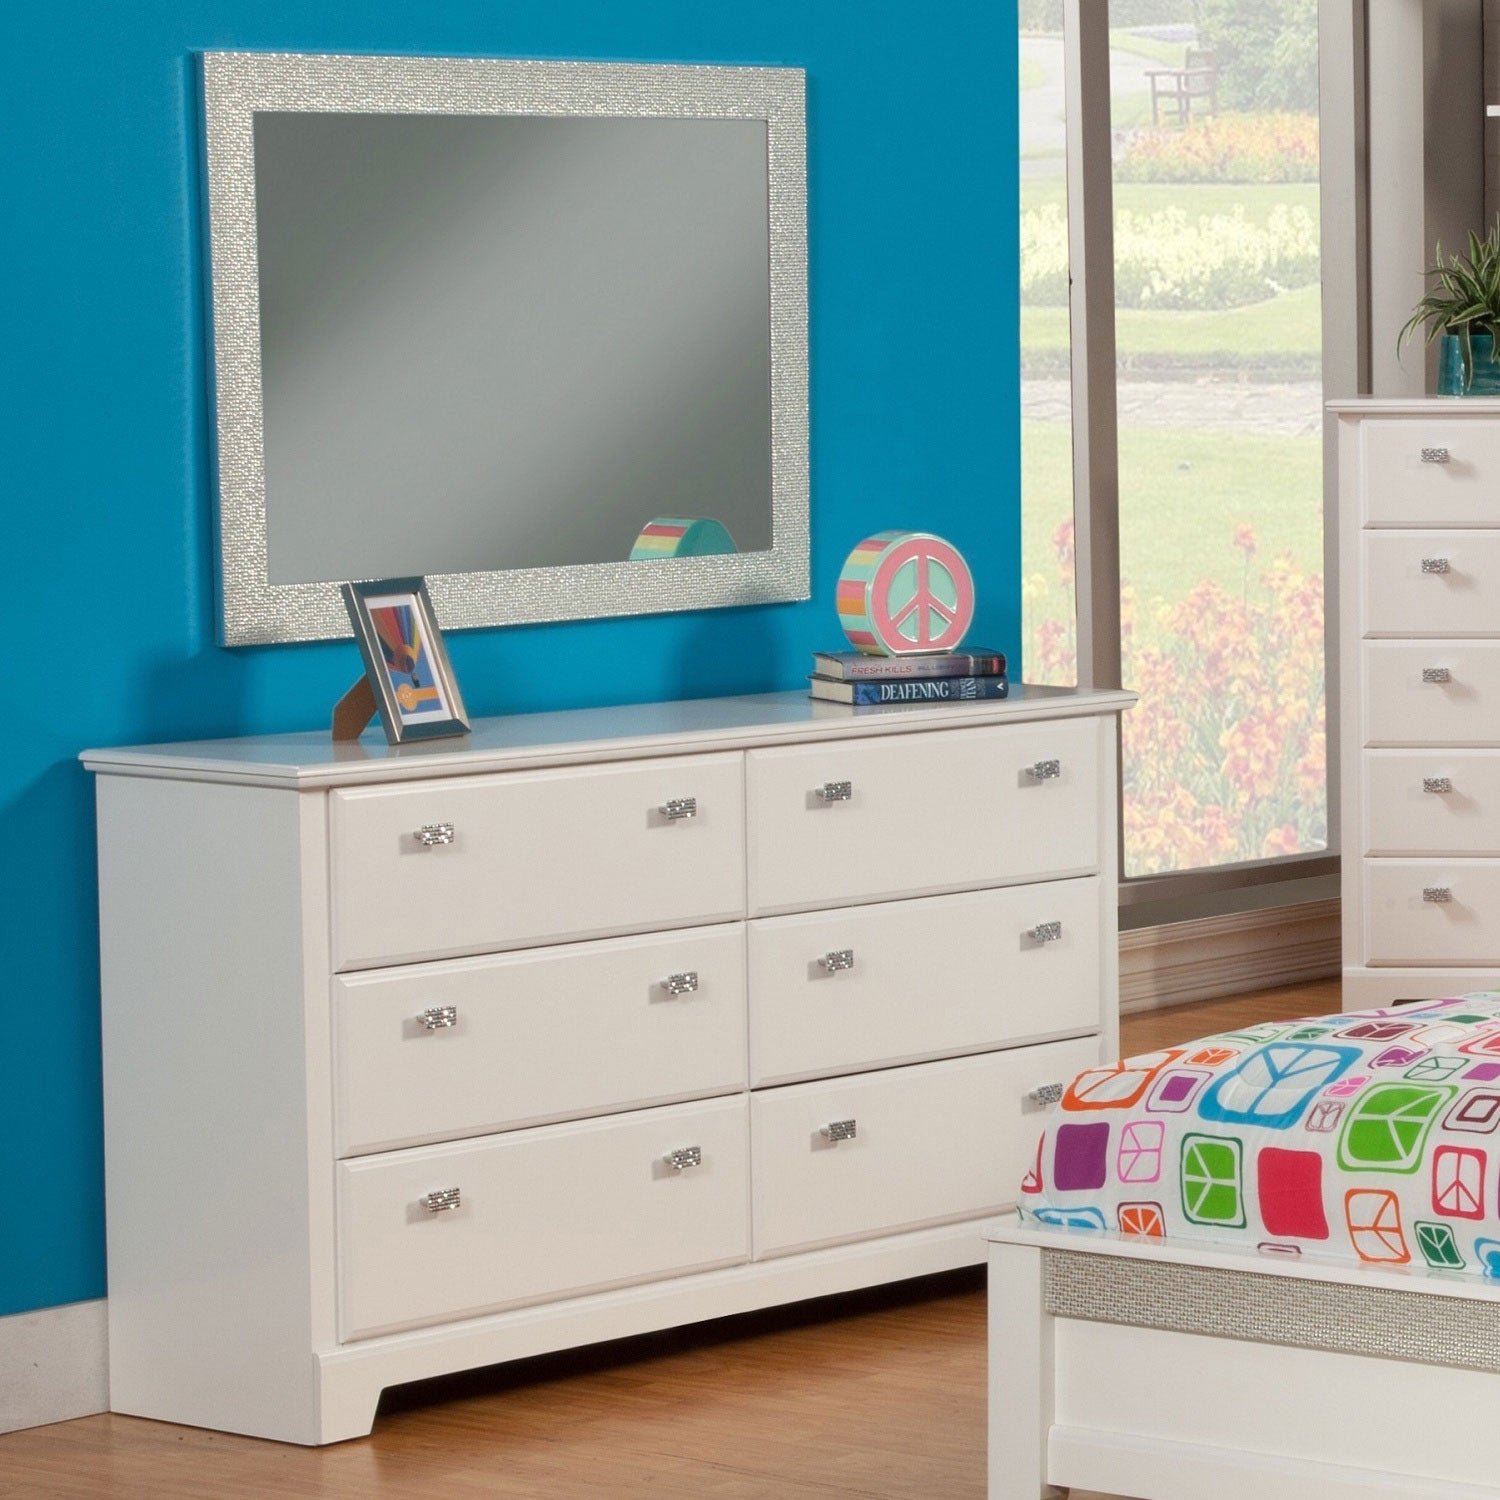 Sandberg Furniture Hailey White 6-drawer Dresser